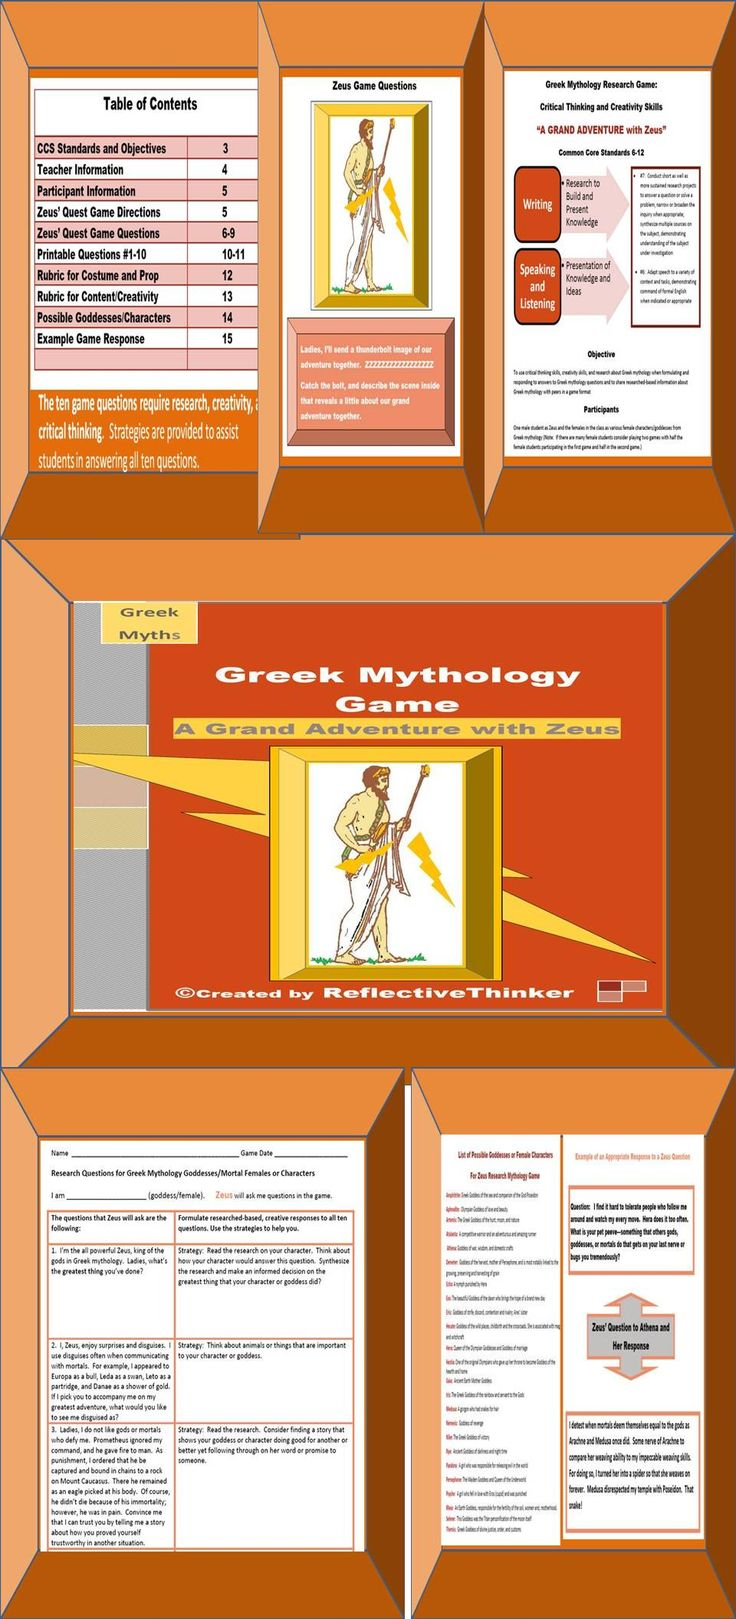 "This Research Greek Mythology Game ""GRAND ADVENTURE with ZEUS,"" which can be played like the Dating Game,  is aligned with CCS Standards and is appropriate for Grades 6-12. Game Objective: To use critical thinking skills, creativity skills, and research about Greek mythology when formulating and responding to answers to Greek mythology questions and to share researched-based information about Greek mythology with peers in a game format"